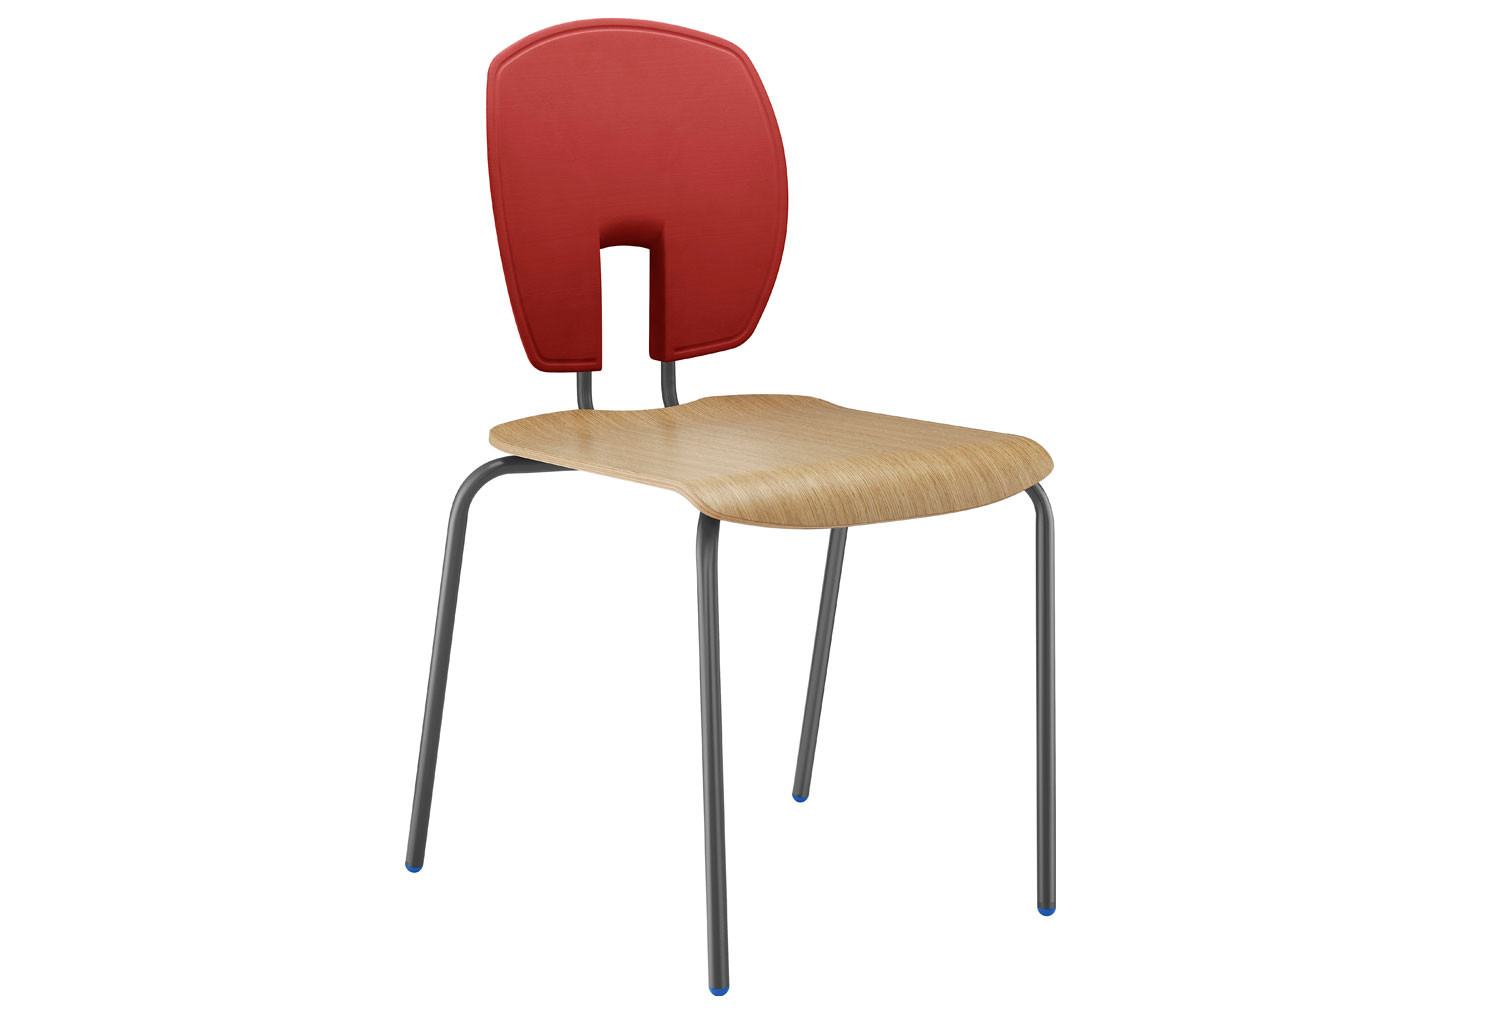 Hille SE Curve Ergonomic Classroom Chair With Wooden Seat